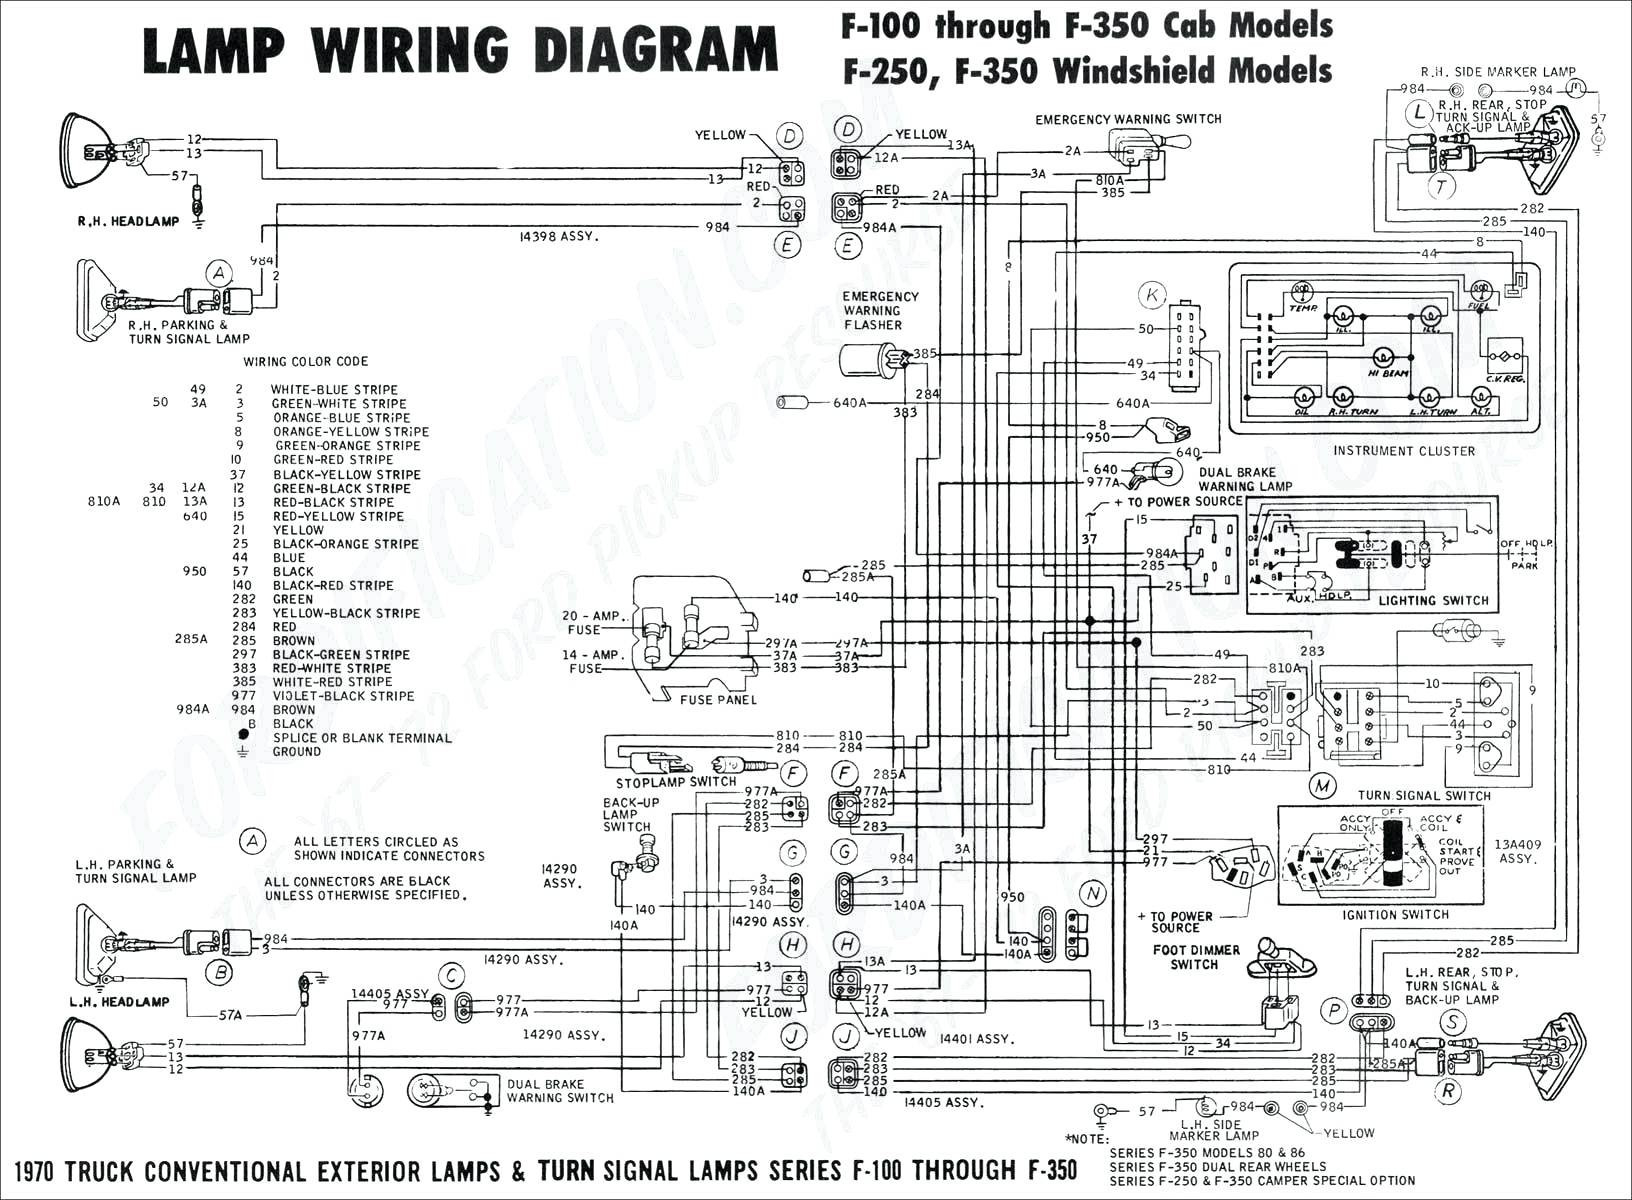 hight resolution of 2001 ford f250 trailer wiring diagram 2005 chevy silverado trailer wiring diagram ford resize gmc